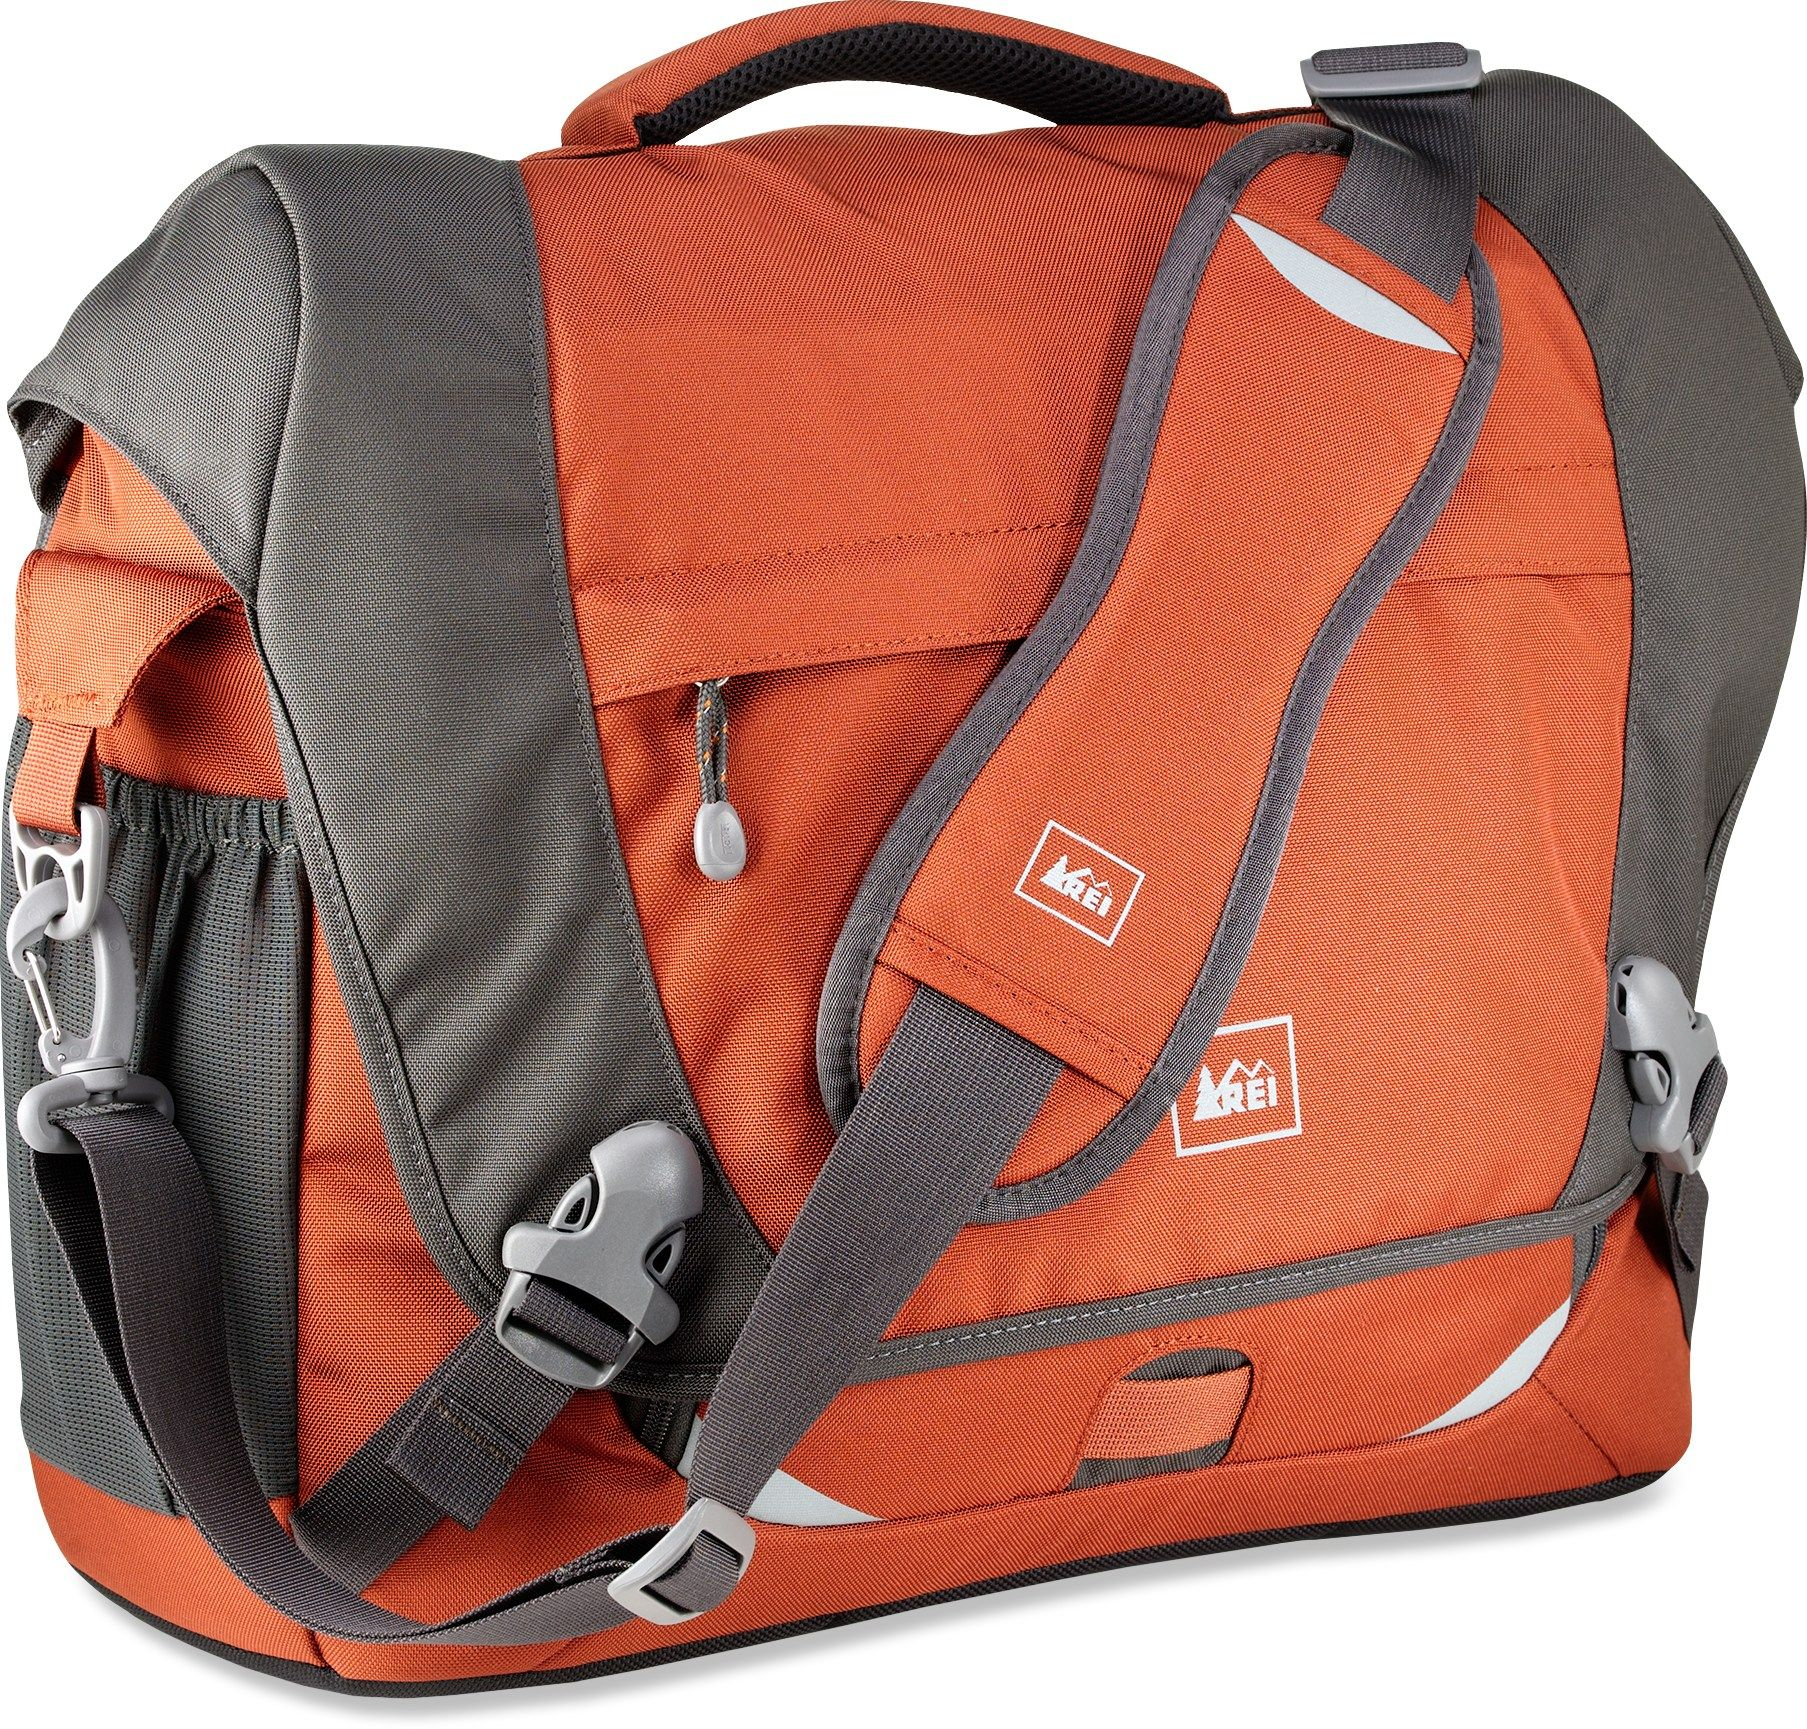 Rei Quantum Messenger Bag Also In Available A 2 Tone Grey 84 50